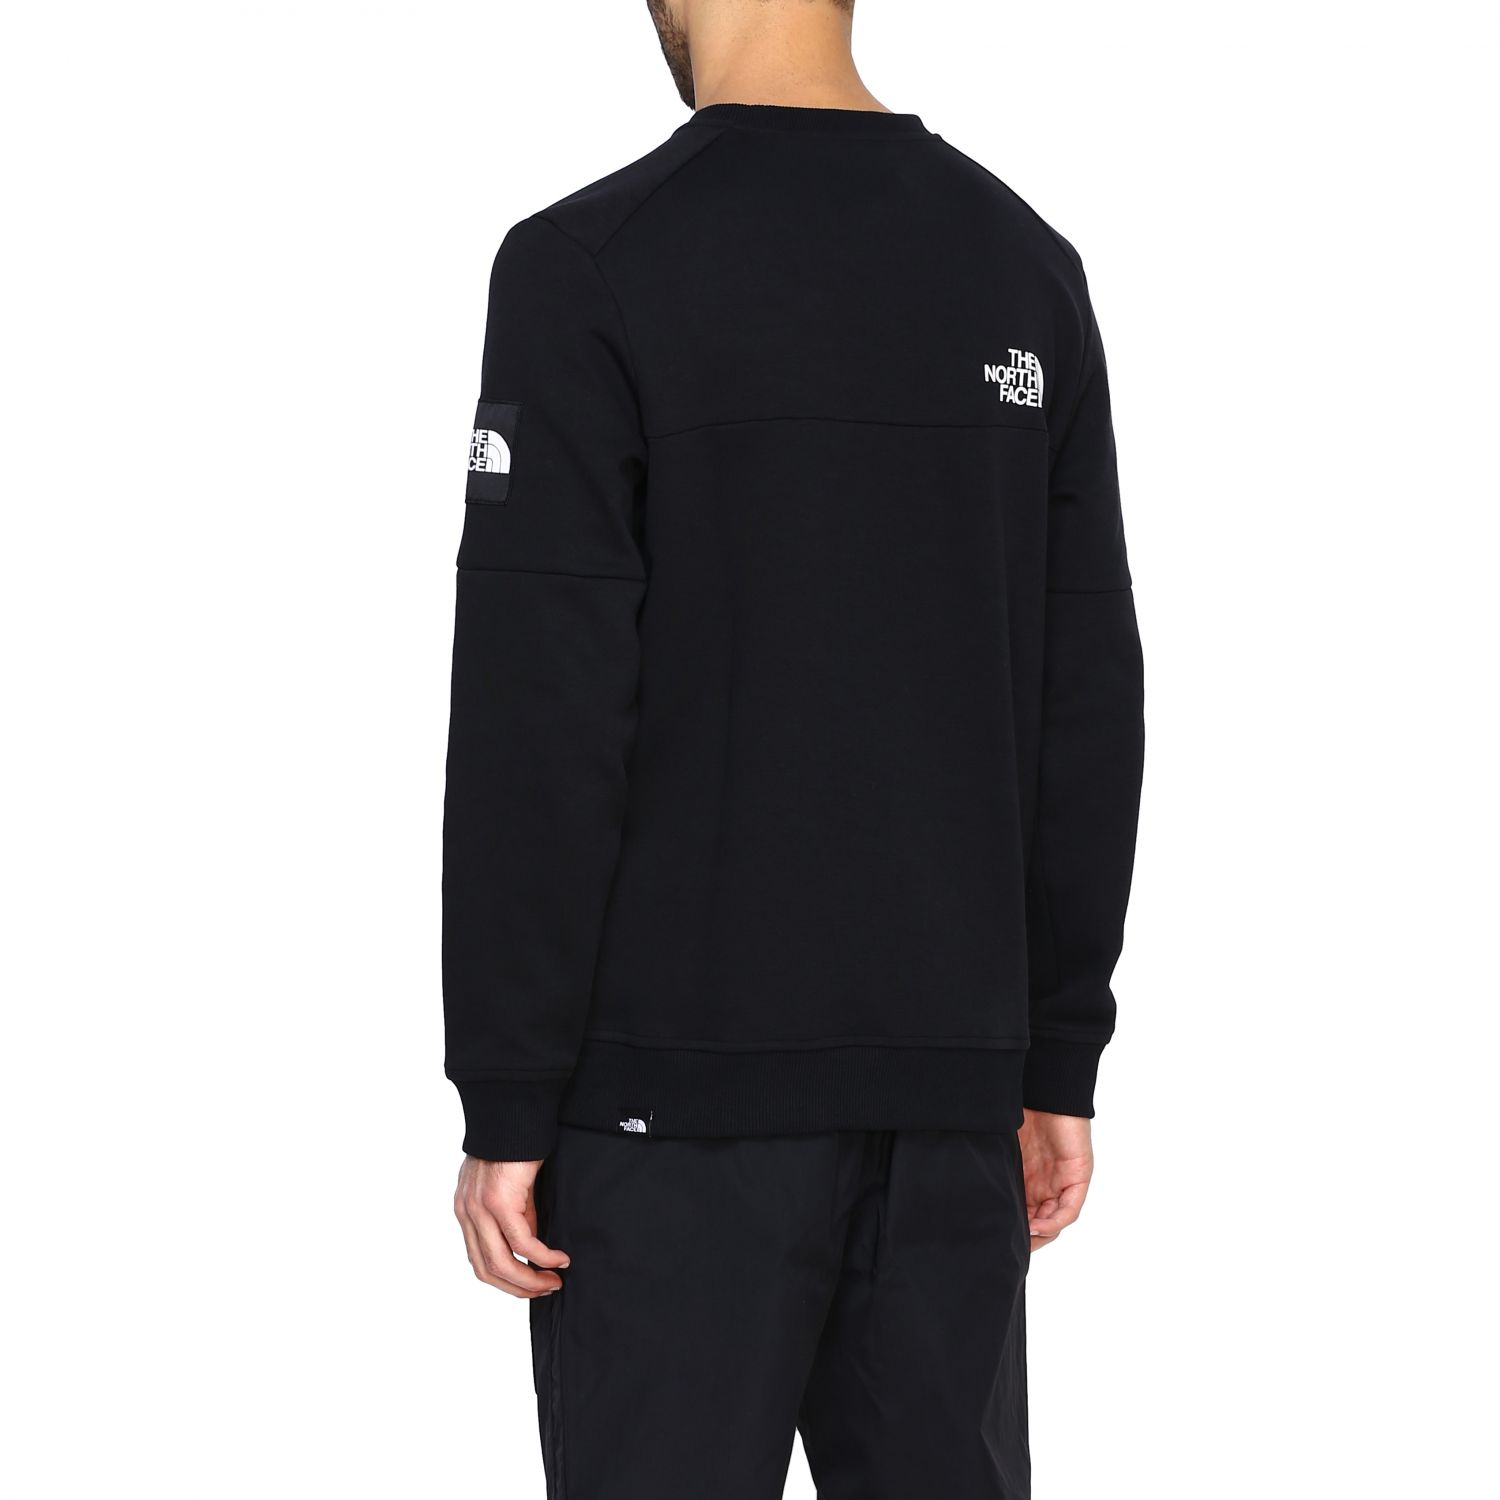 Sweatshirt herren The North Face schwarz 3